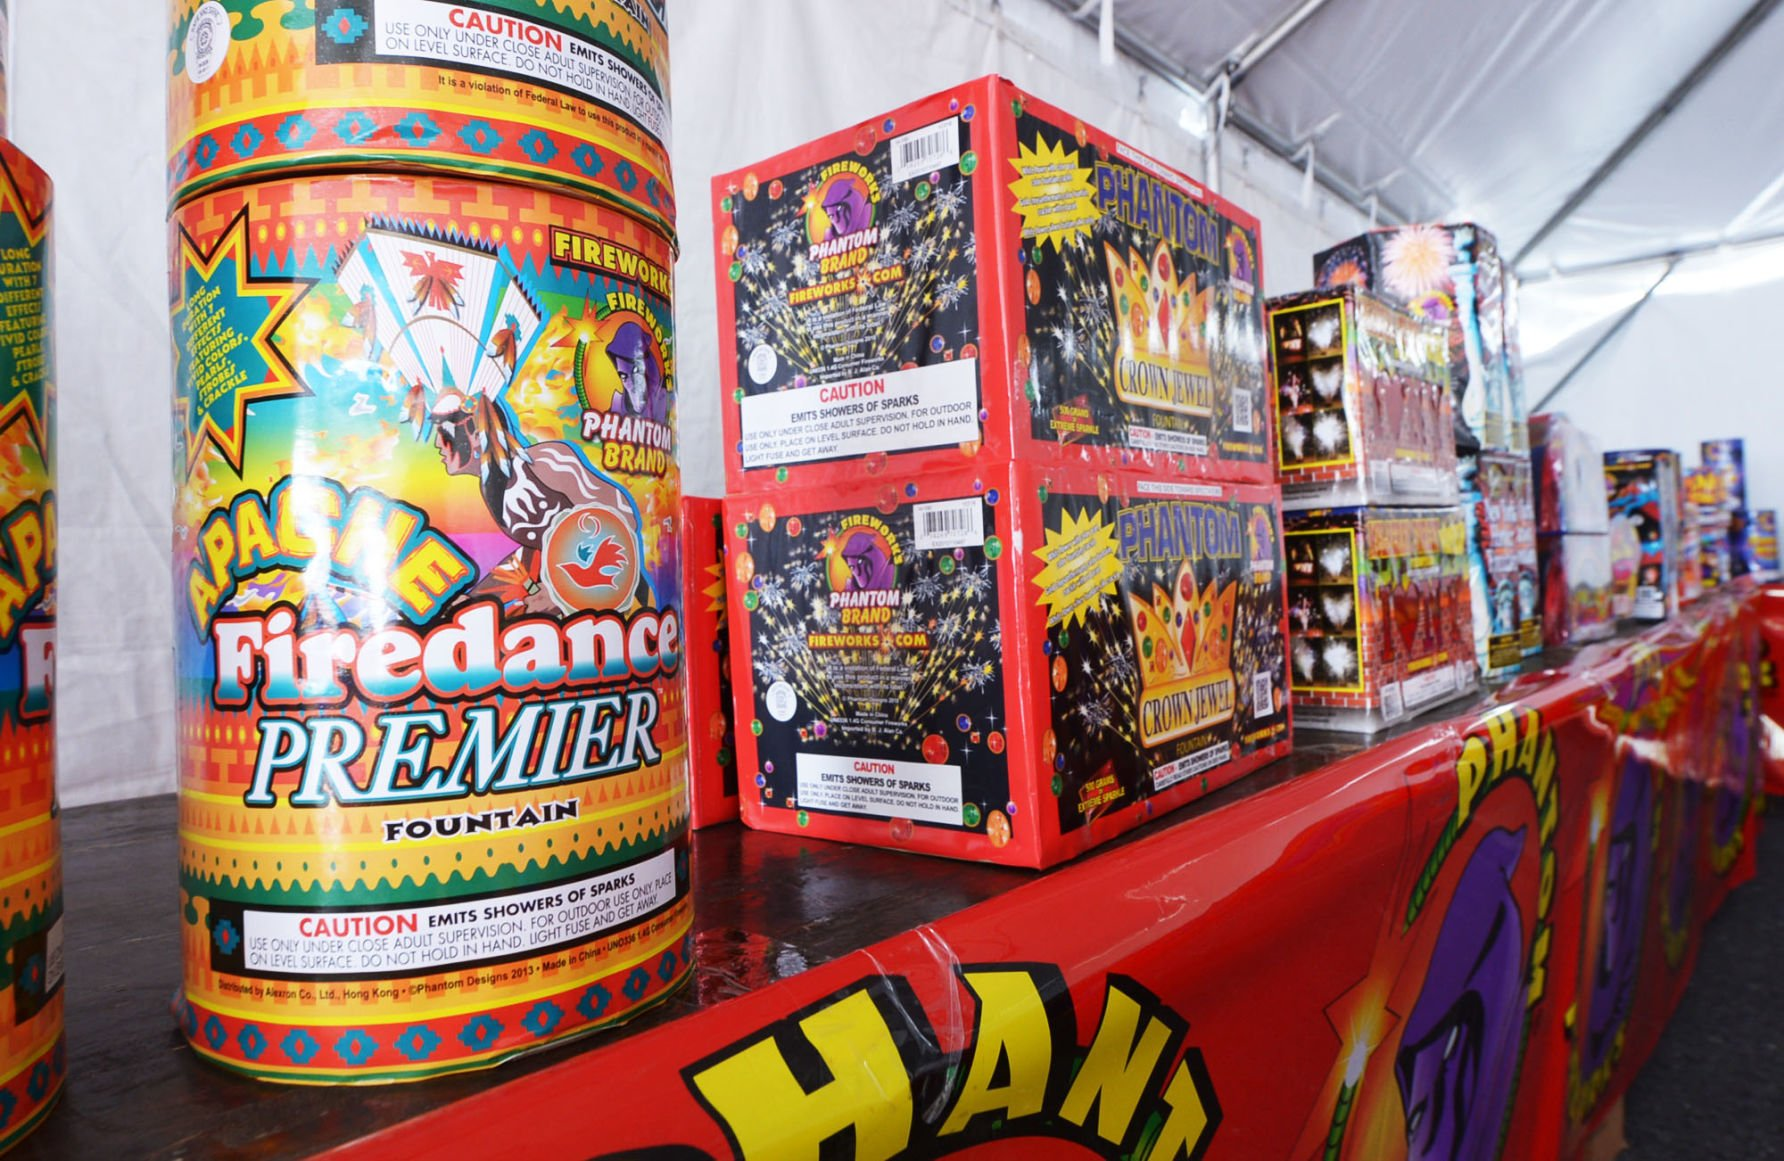 A Phantom Fireworks tent sells an assortment of fireworks in H&den Township in 2016. & Court decision limits fireworks sales from roadside tents | State ...